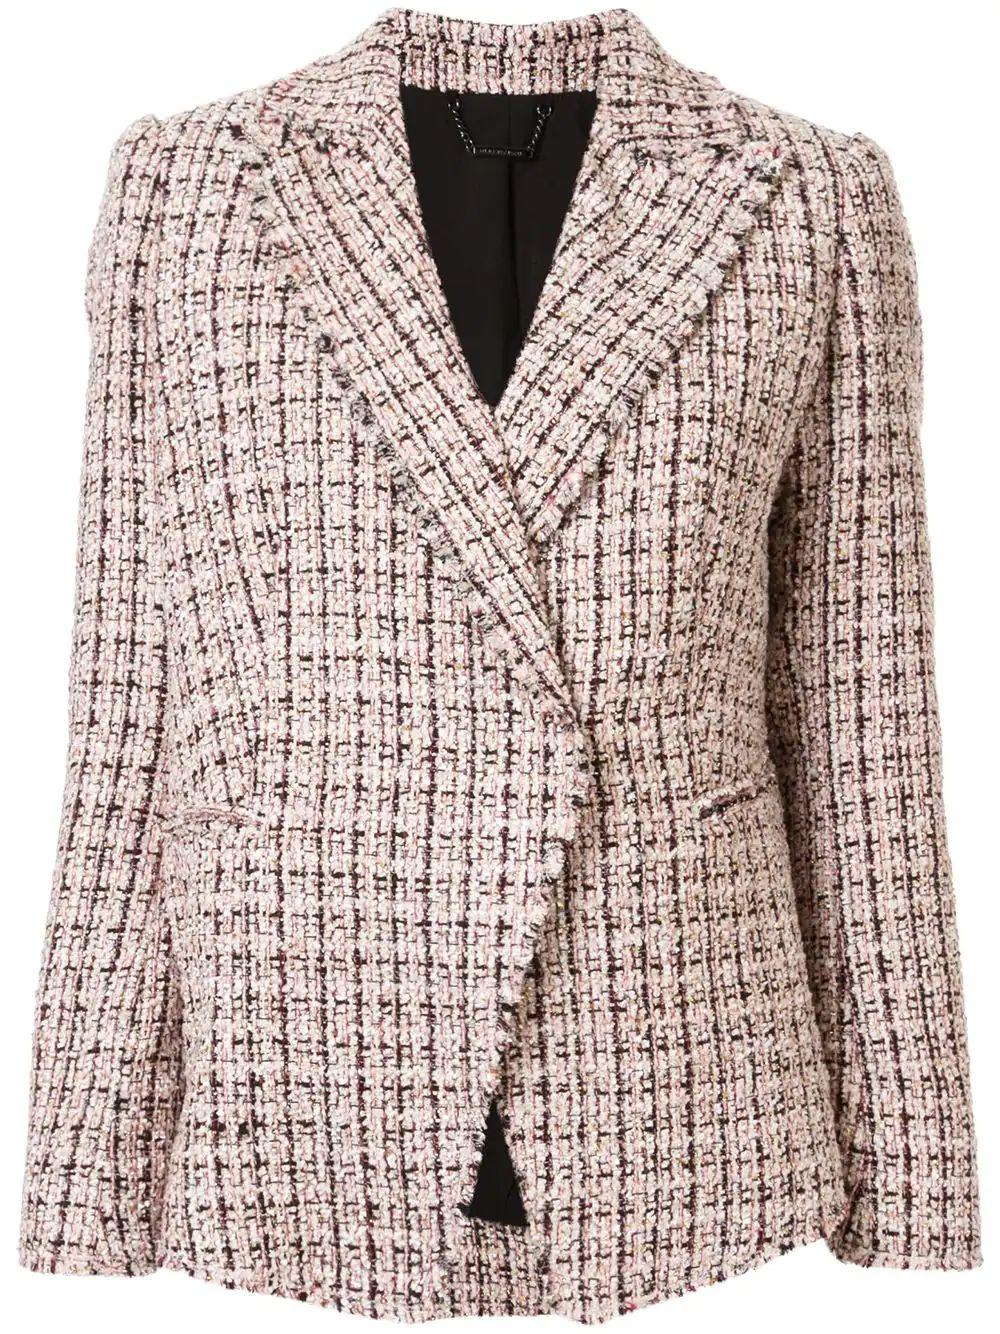 Jezebel Tweed Jacket